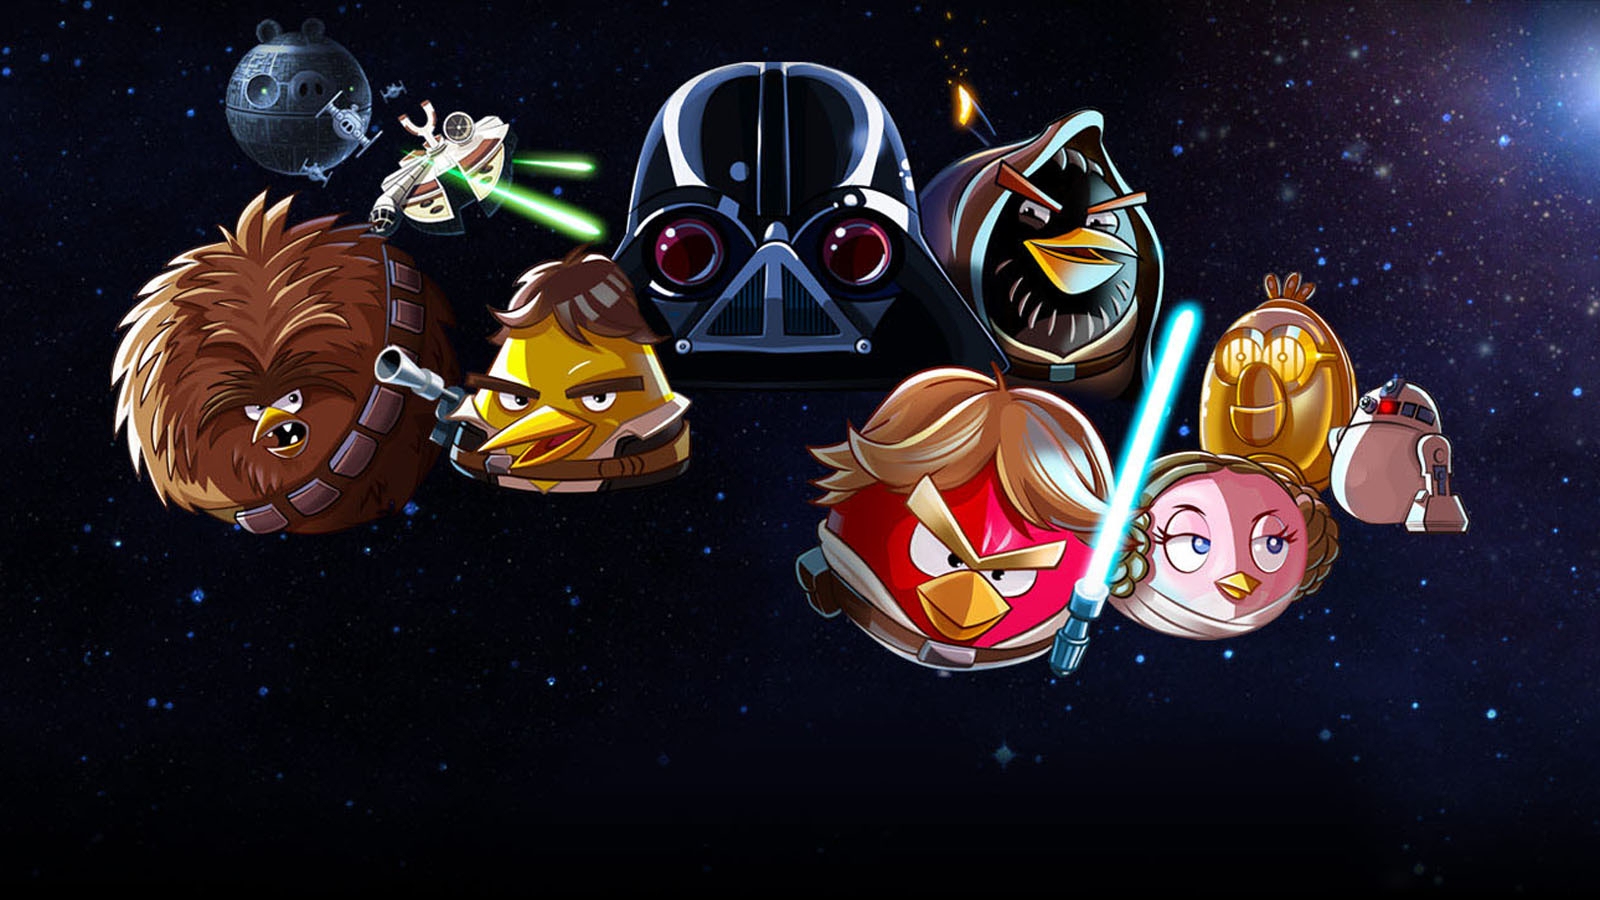 Free Download Angry Birds Star Wars Characters Wallpaper 2910jpg